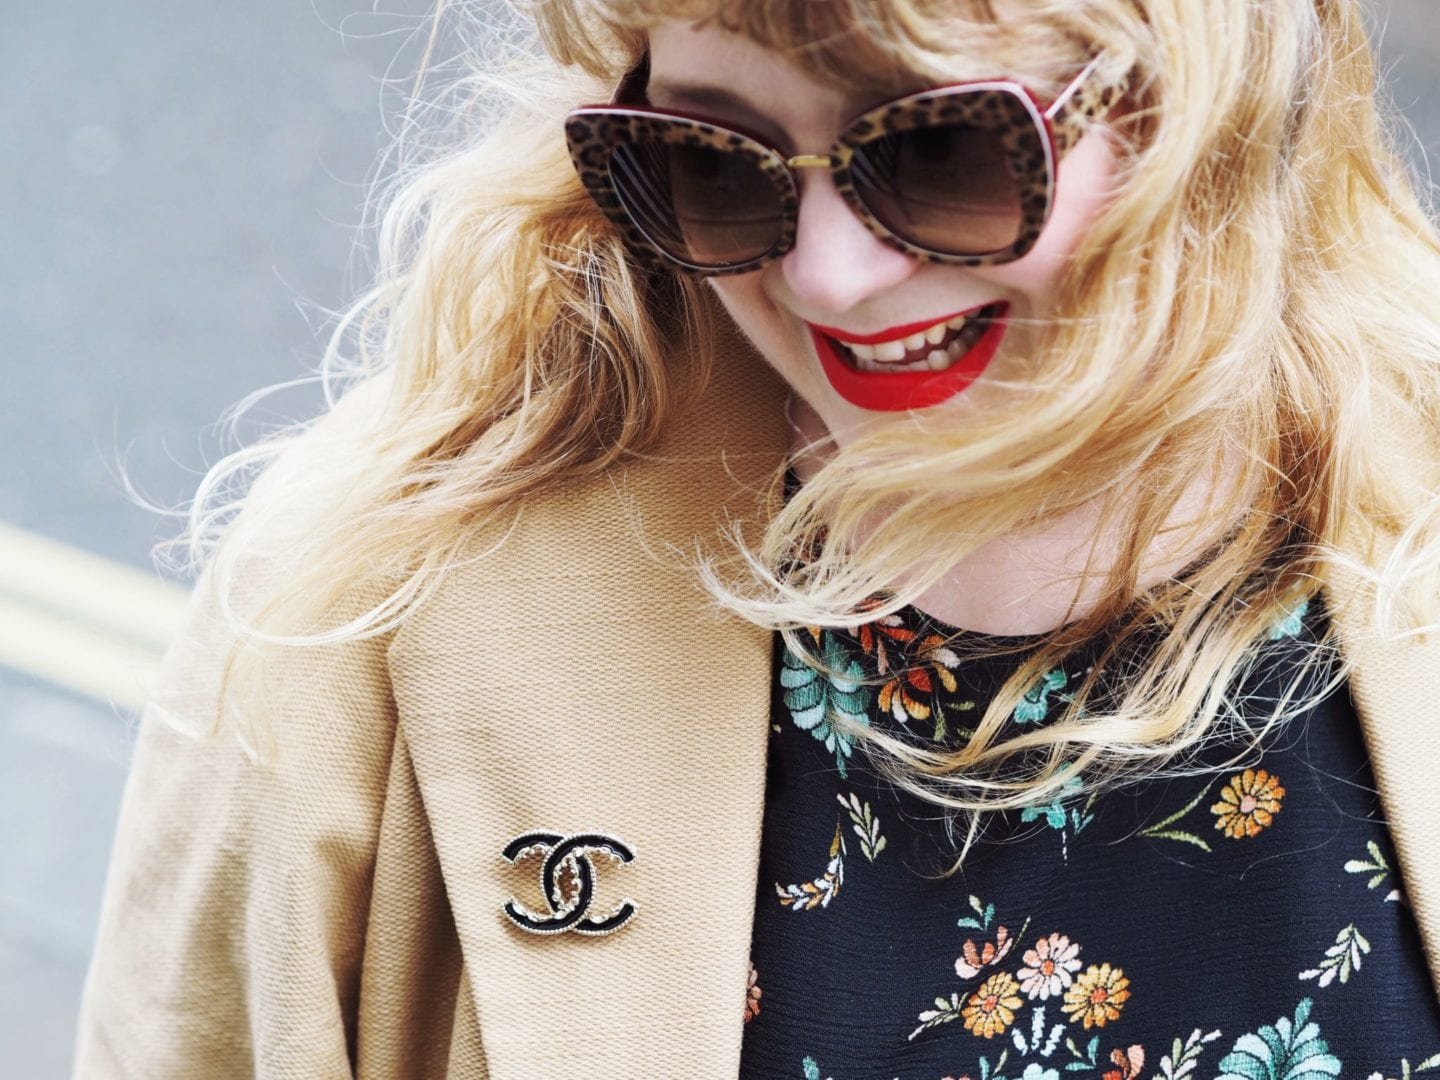 How To Stop A Chanel Brooch From Falling Off